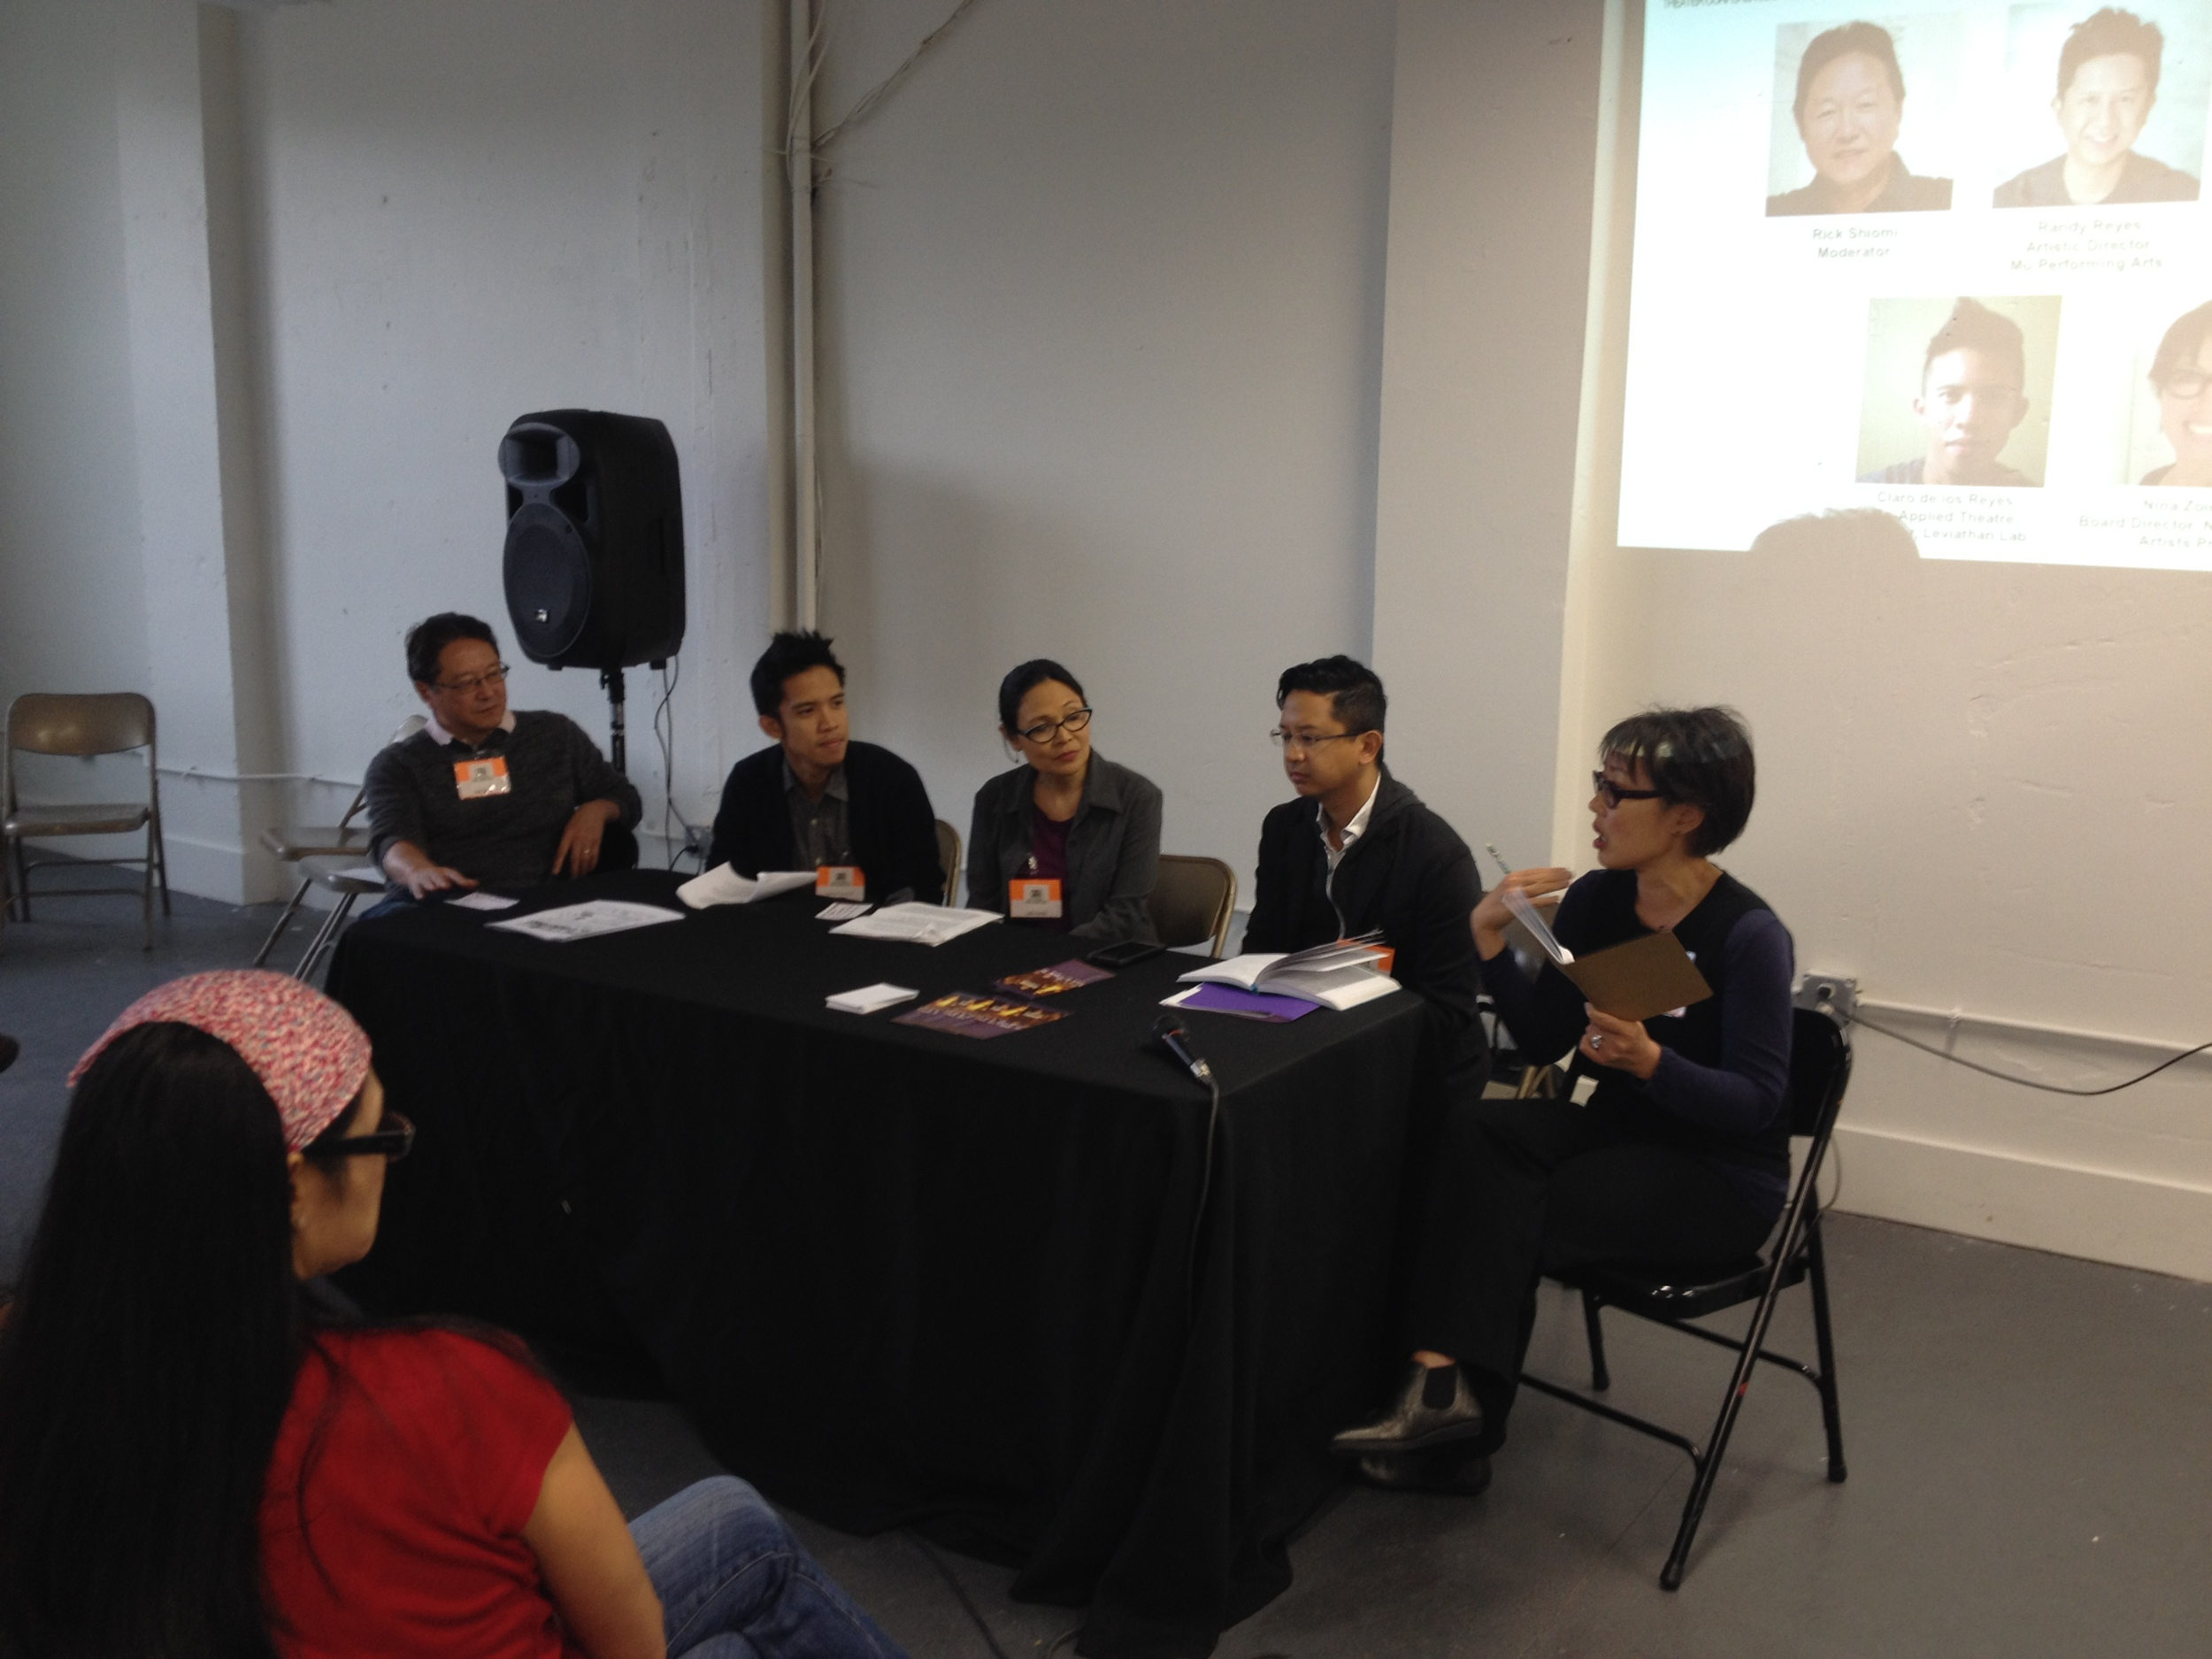 Rainbow Connections: Creating Programs for Asian American Youth Panel at the CAATA National Asian American Theater Conference & Festival (L to R): Rick Shiomi, Leviathan Lab's Claro de los Reyes & Lydia Gaston; Mu Performing Arts' Artistic Director Randy Reyes, and National Asian Artists' Project Nina Zoie Lam.